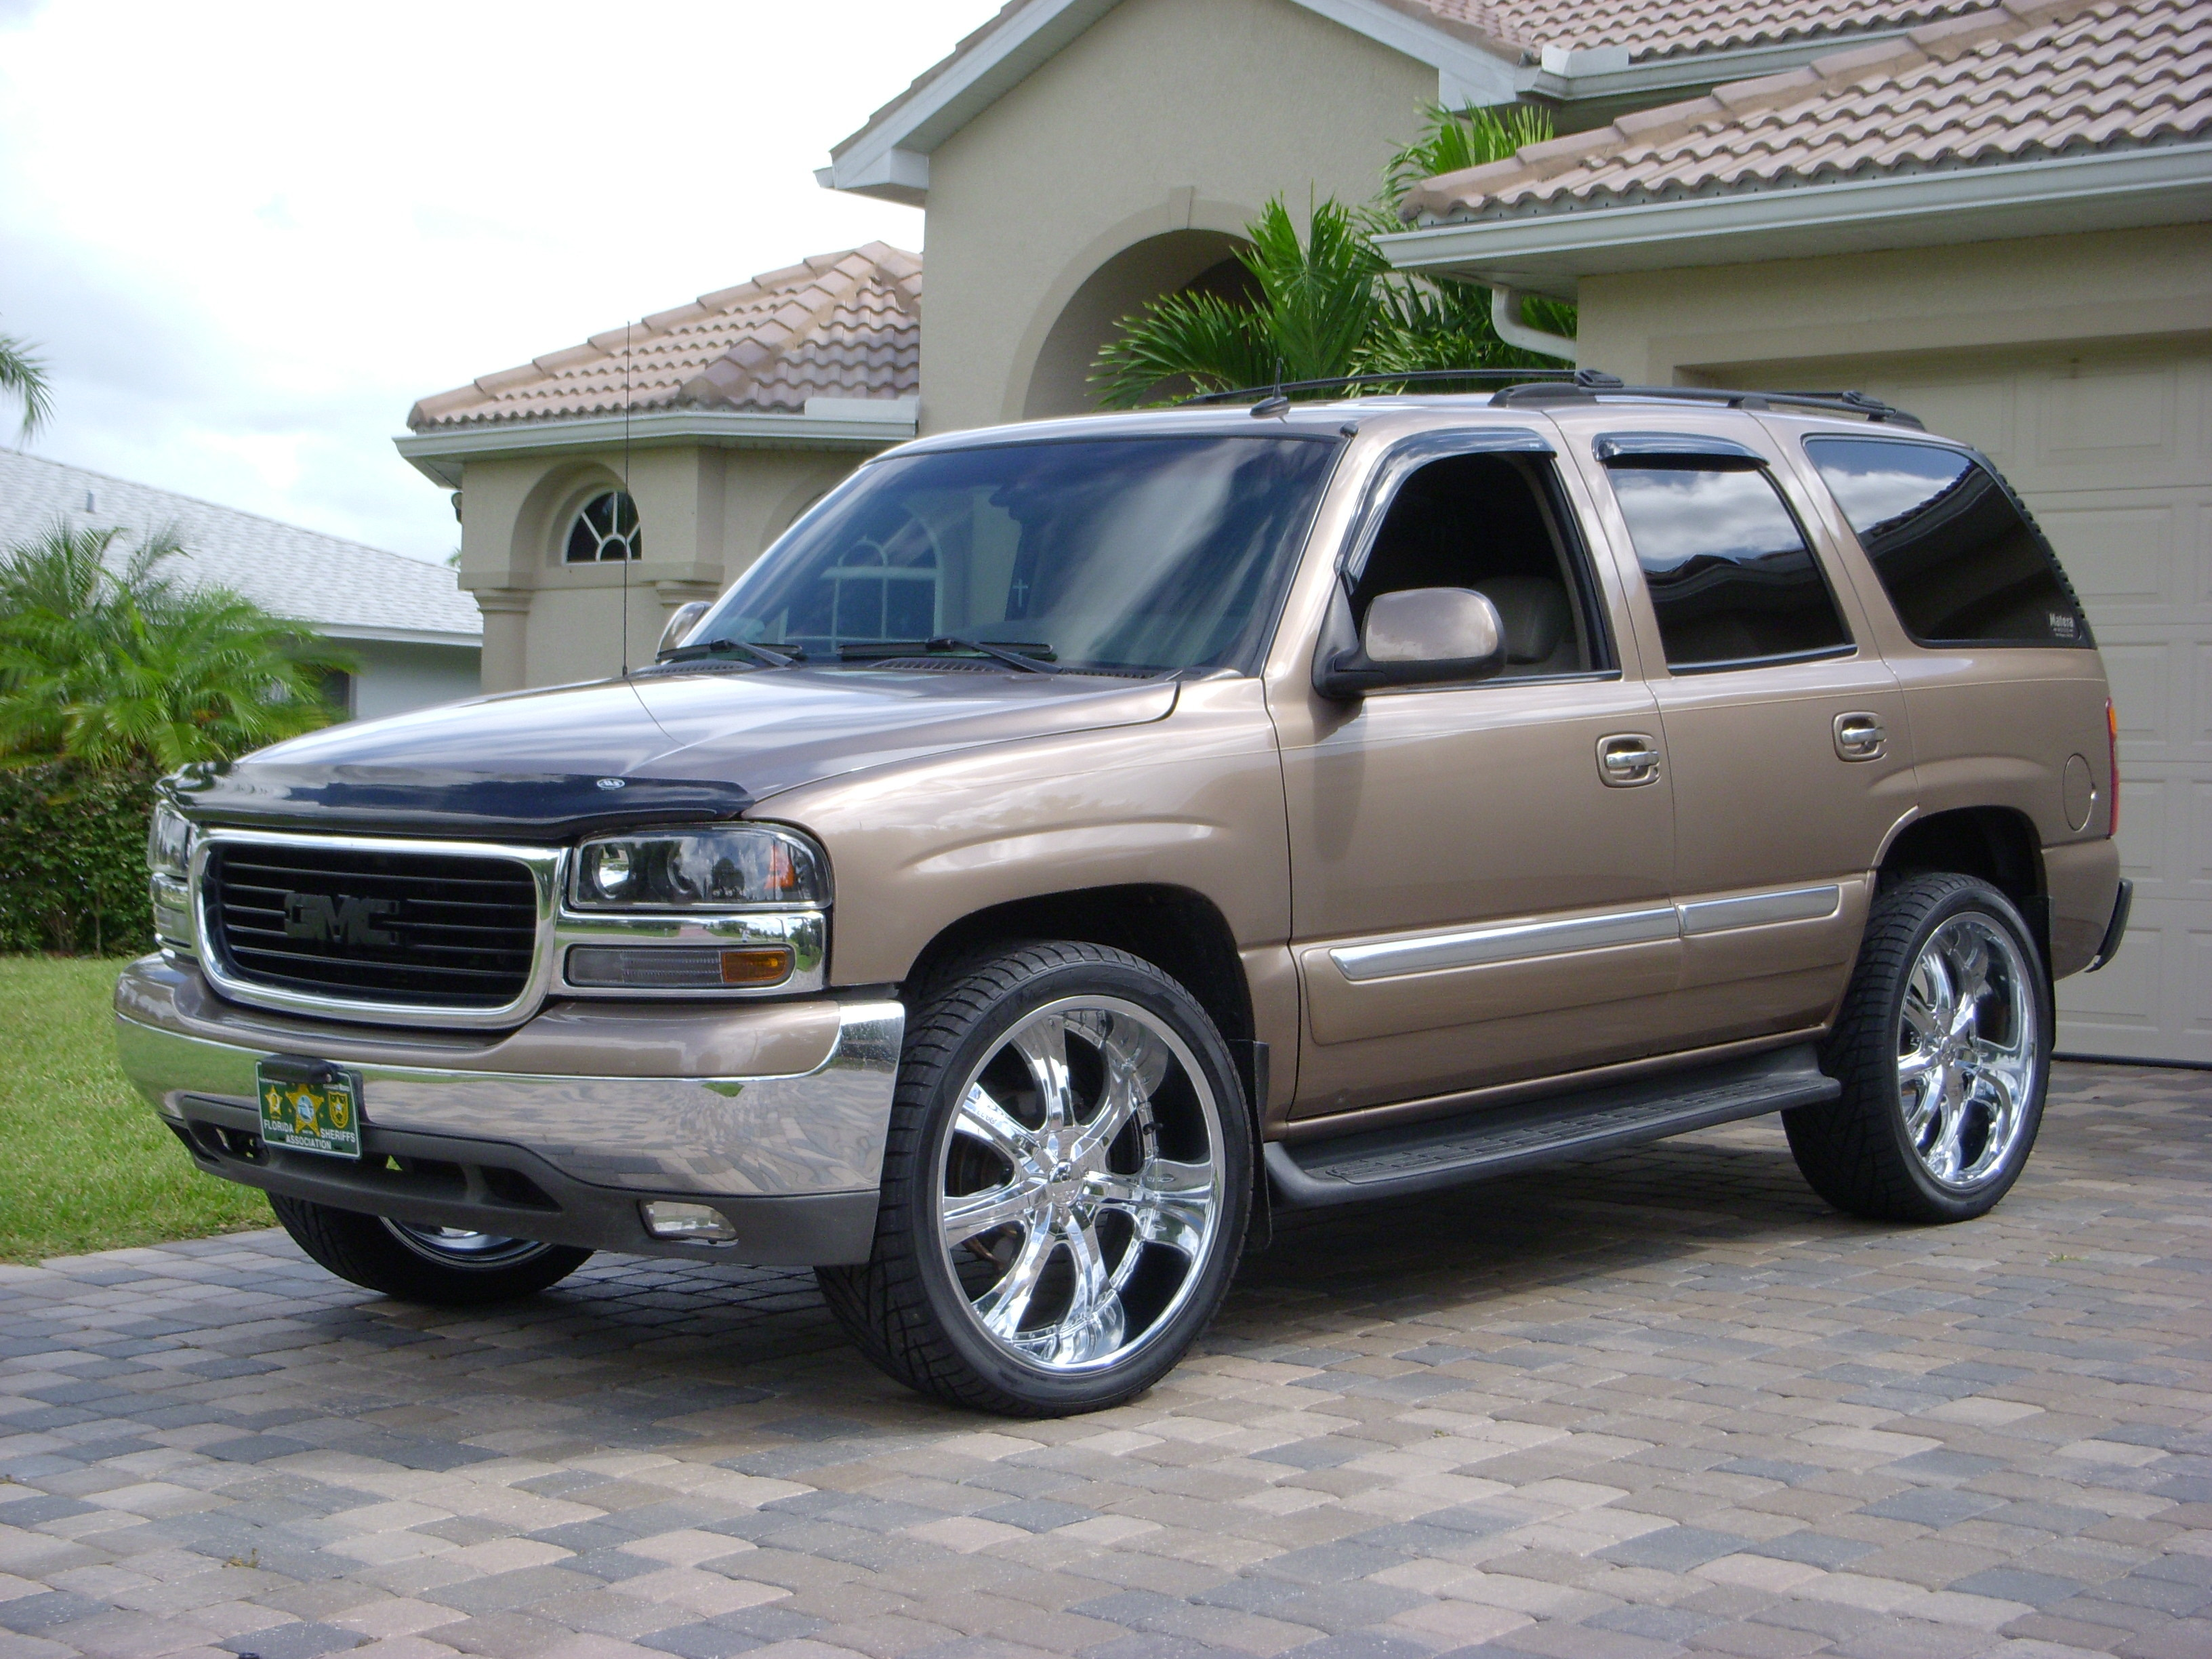 MateraMotors 2003 GMC Yukon Specs, Photos, Modification ...